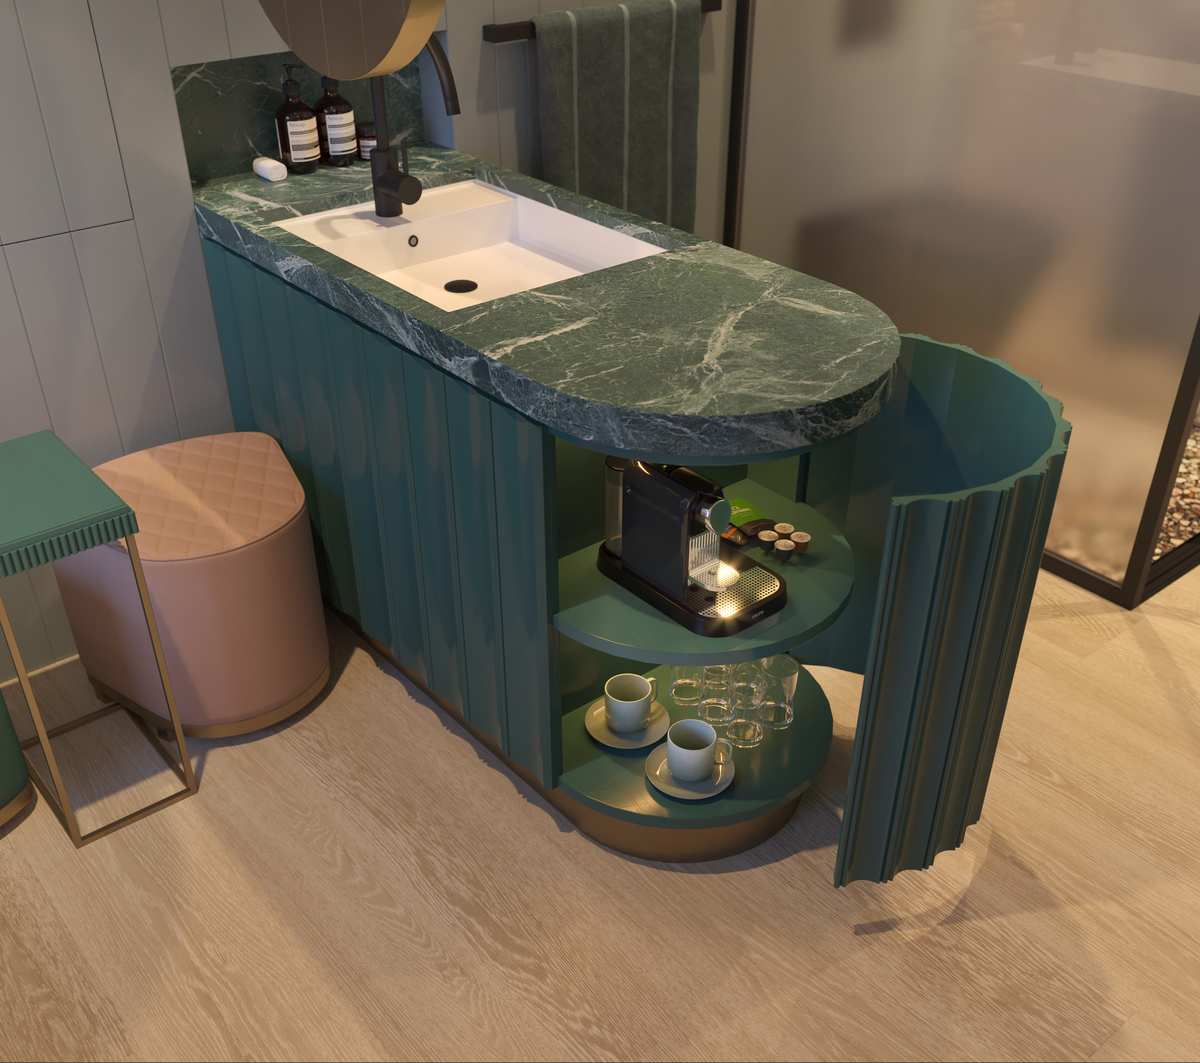 Micro Hotel Concept Room Proves Good Things Do Come In Small